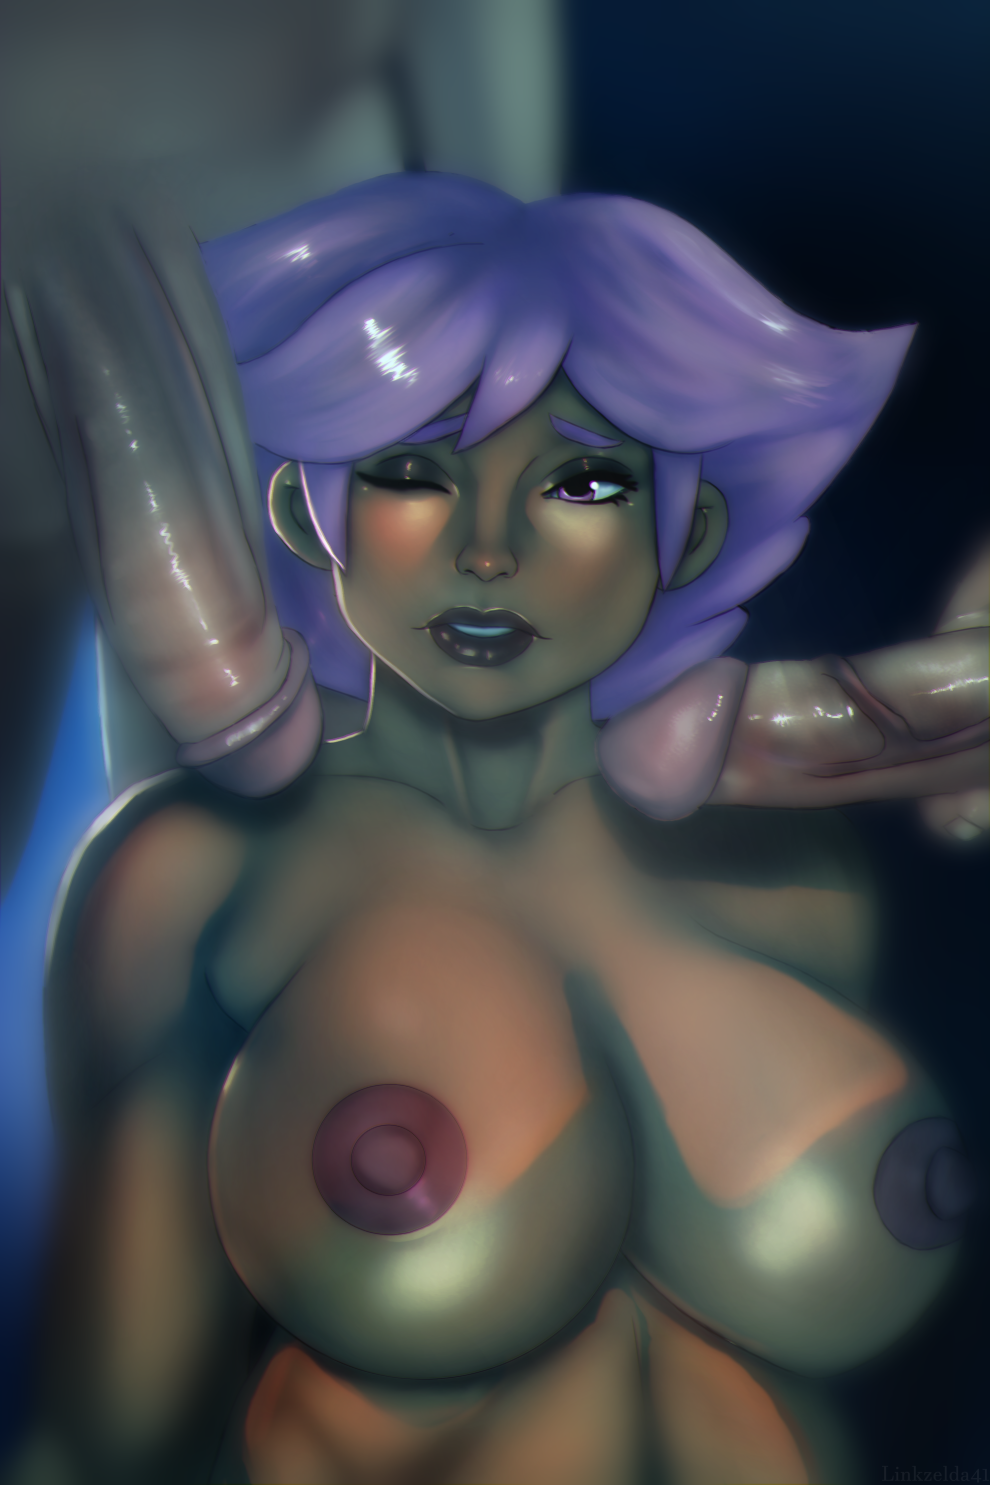 she-ra the of princesses and glimmer power One piece boa hancock nude